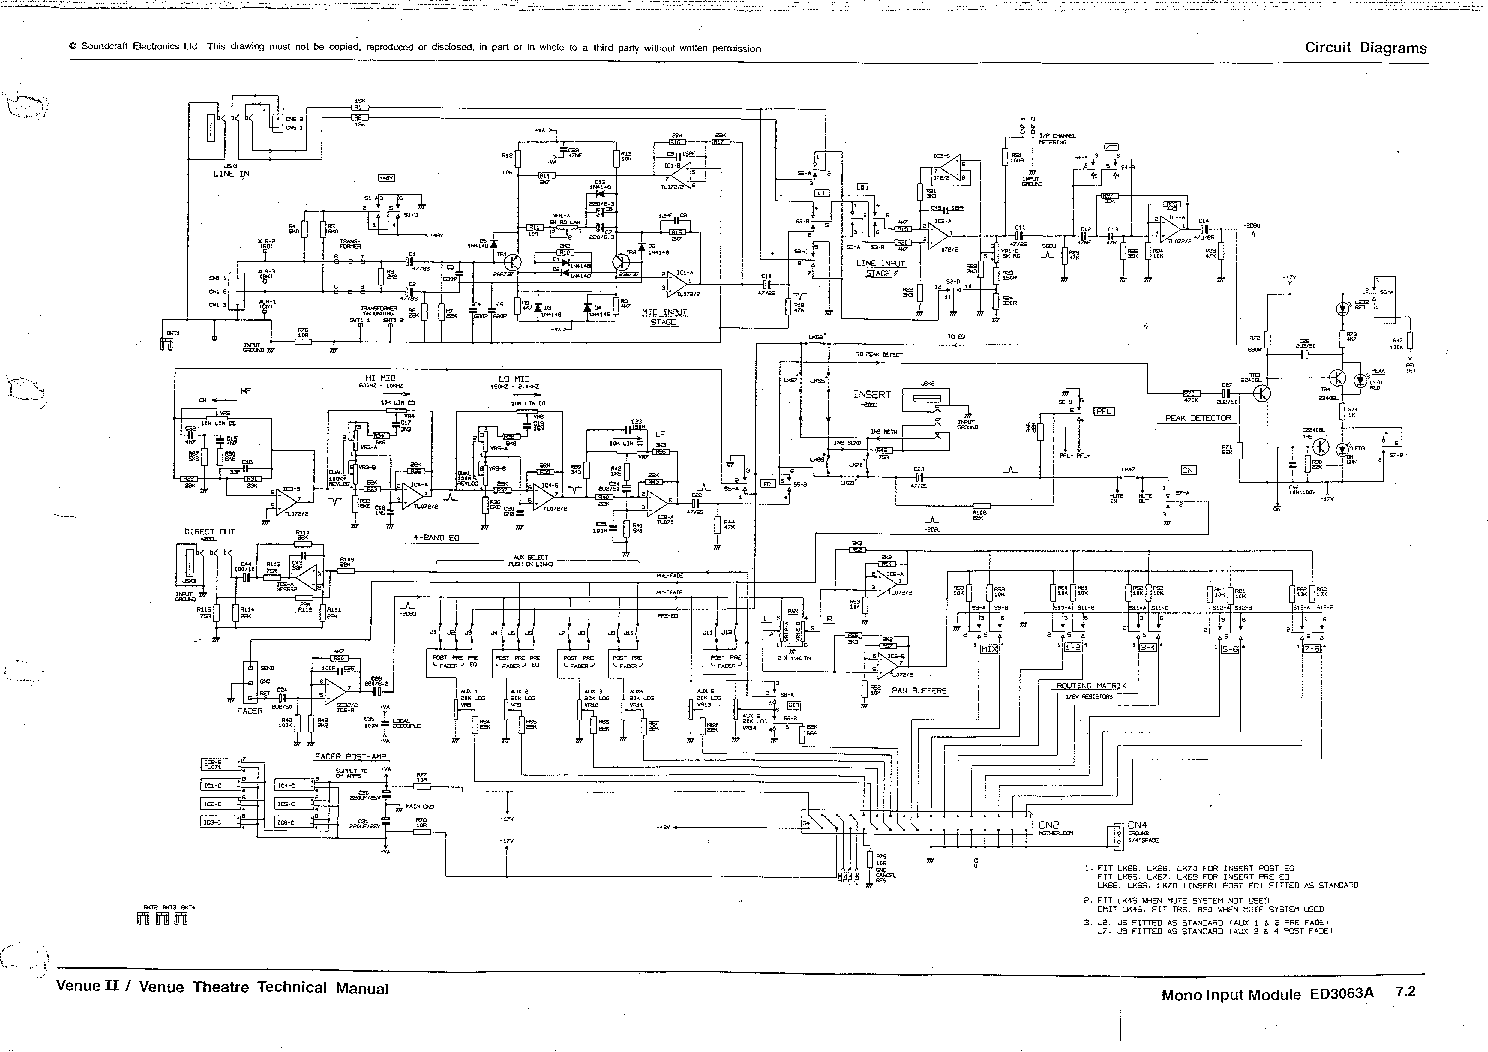 Soundcraft L1 Sch Service Manual Free Download Schematics